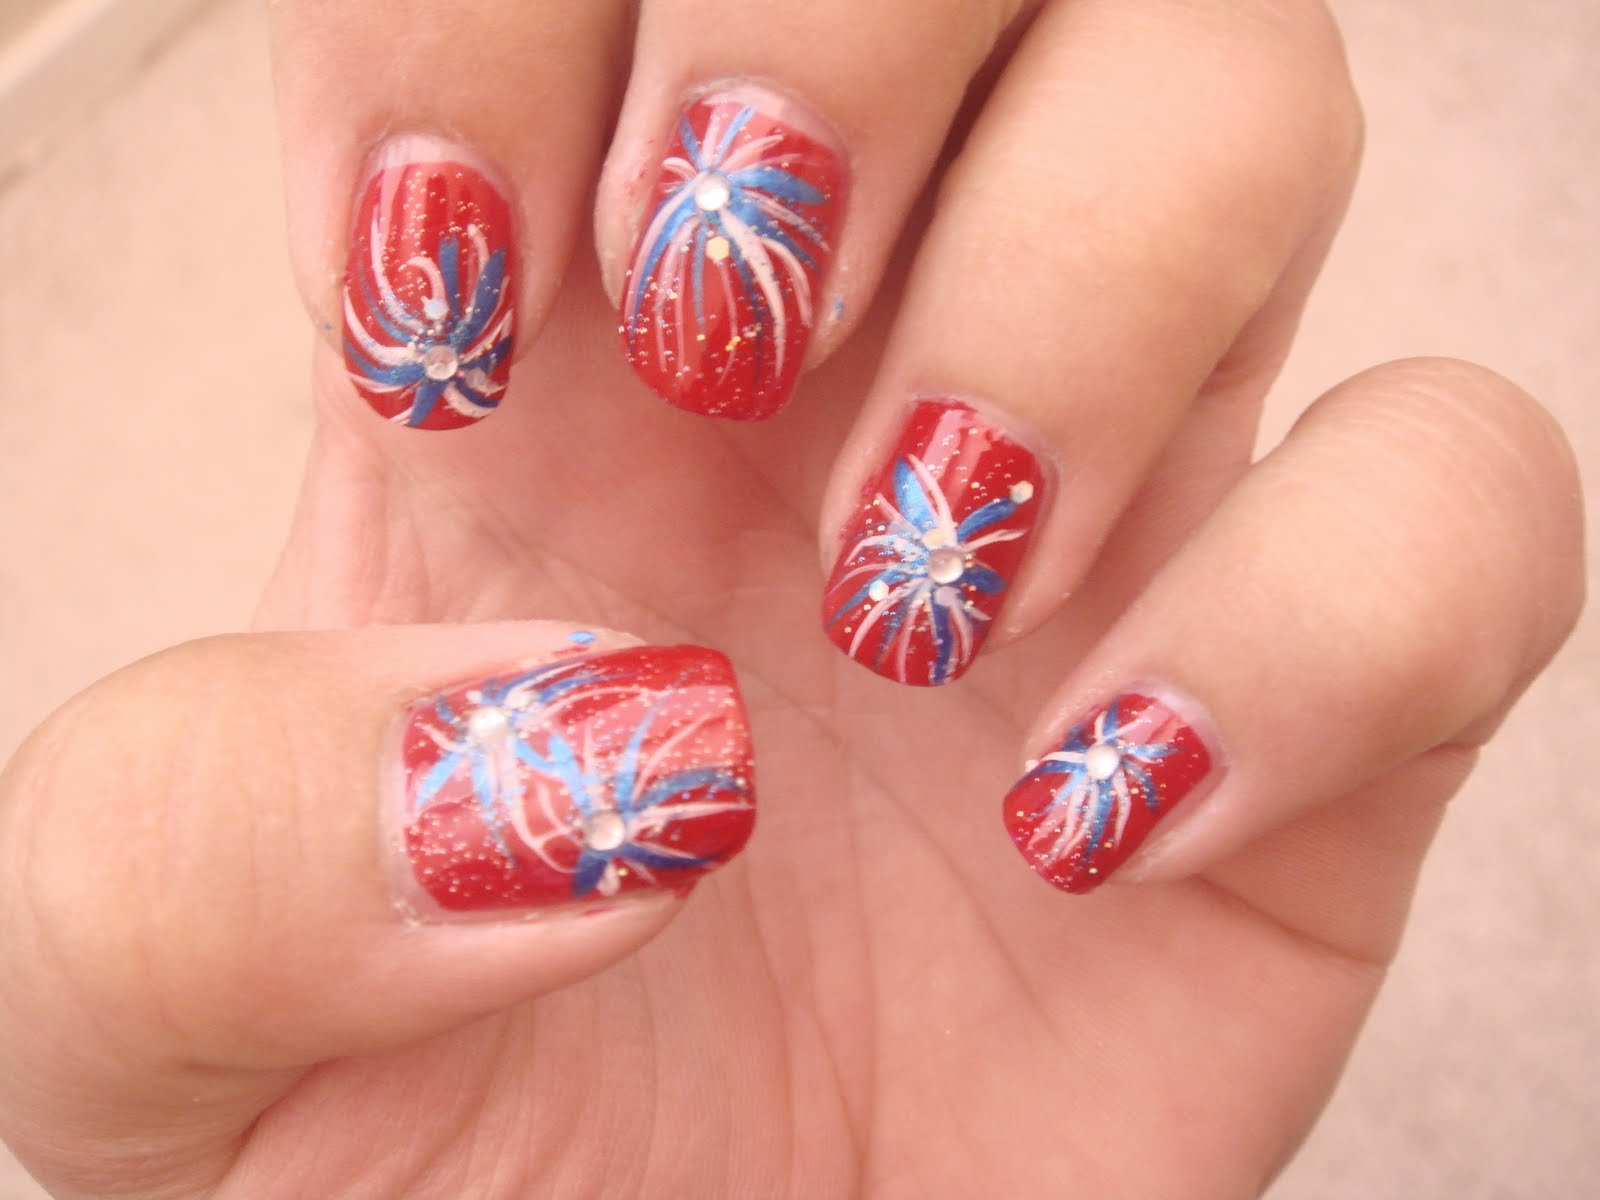 Nail art pictures nail art ideas 4th july dust i topped it all off with a rhinestone and voila firework nail art prinsesfo Choice Image